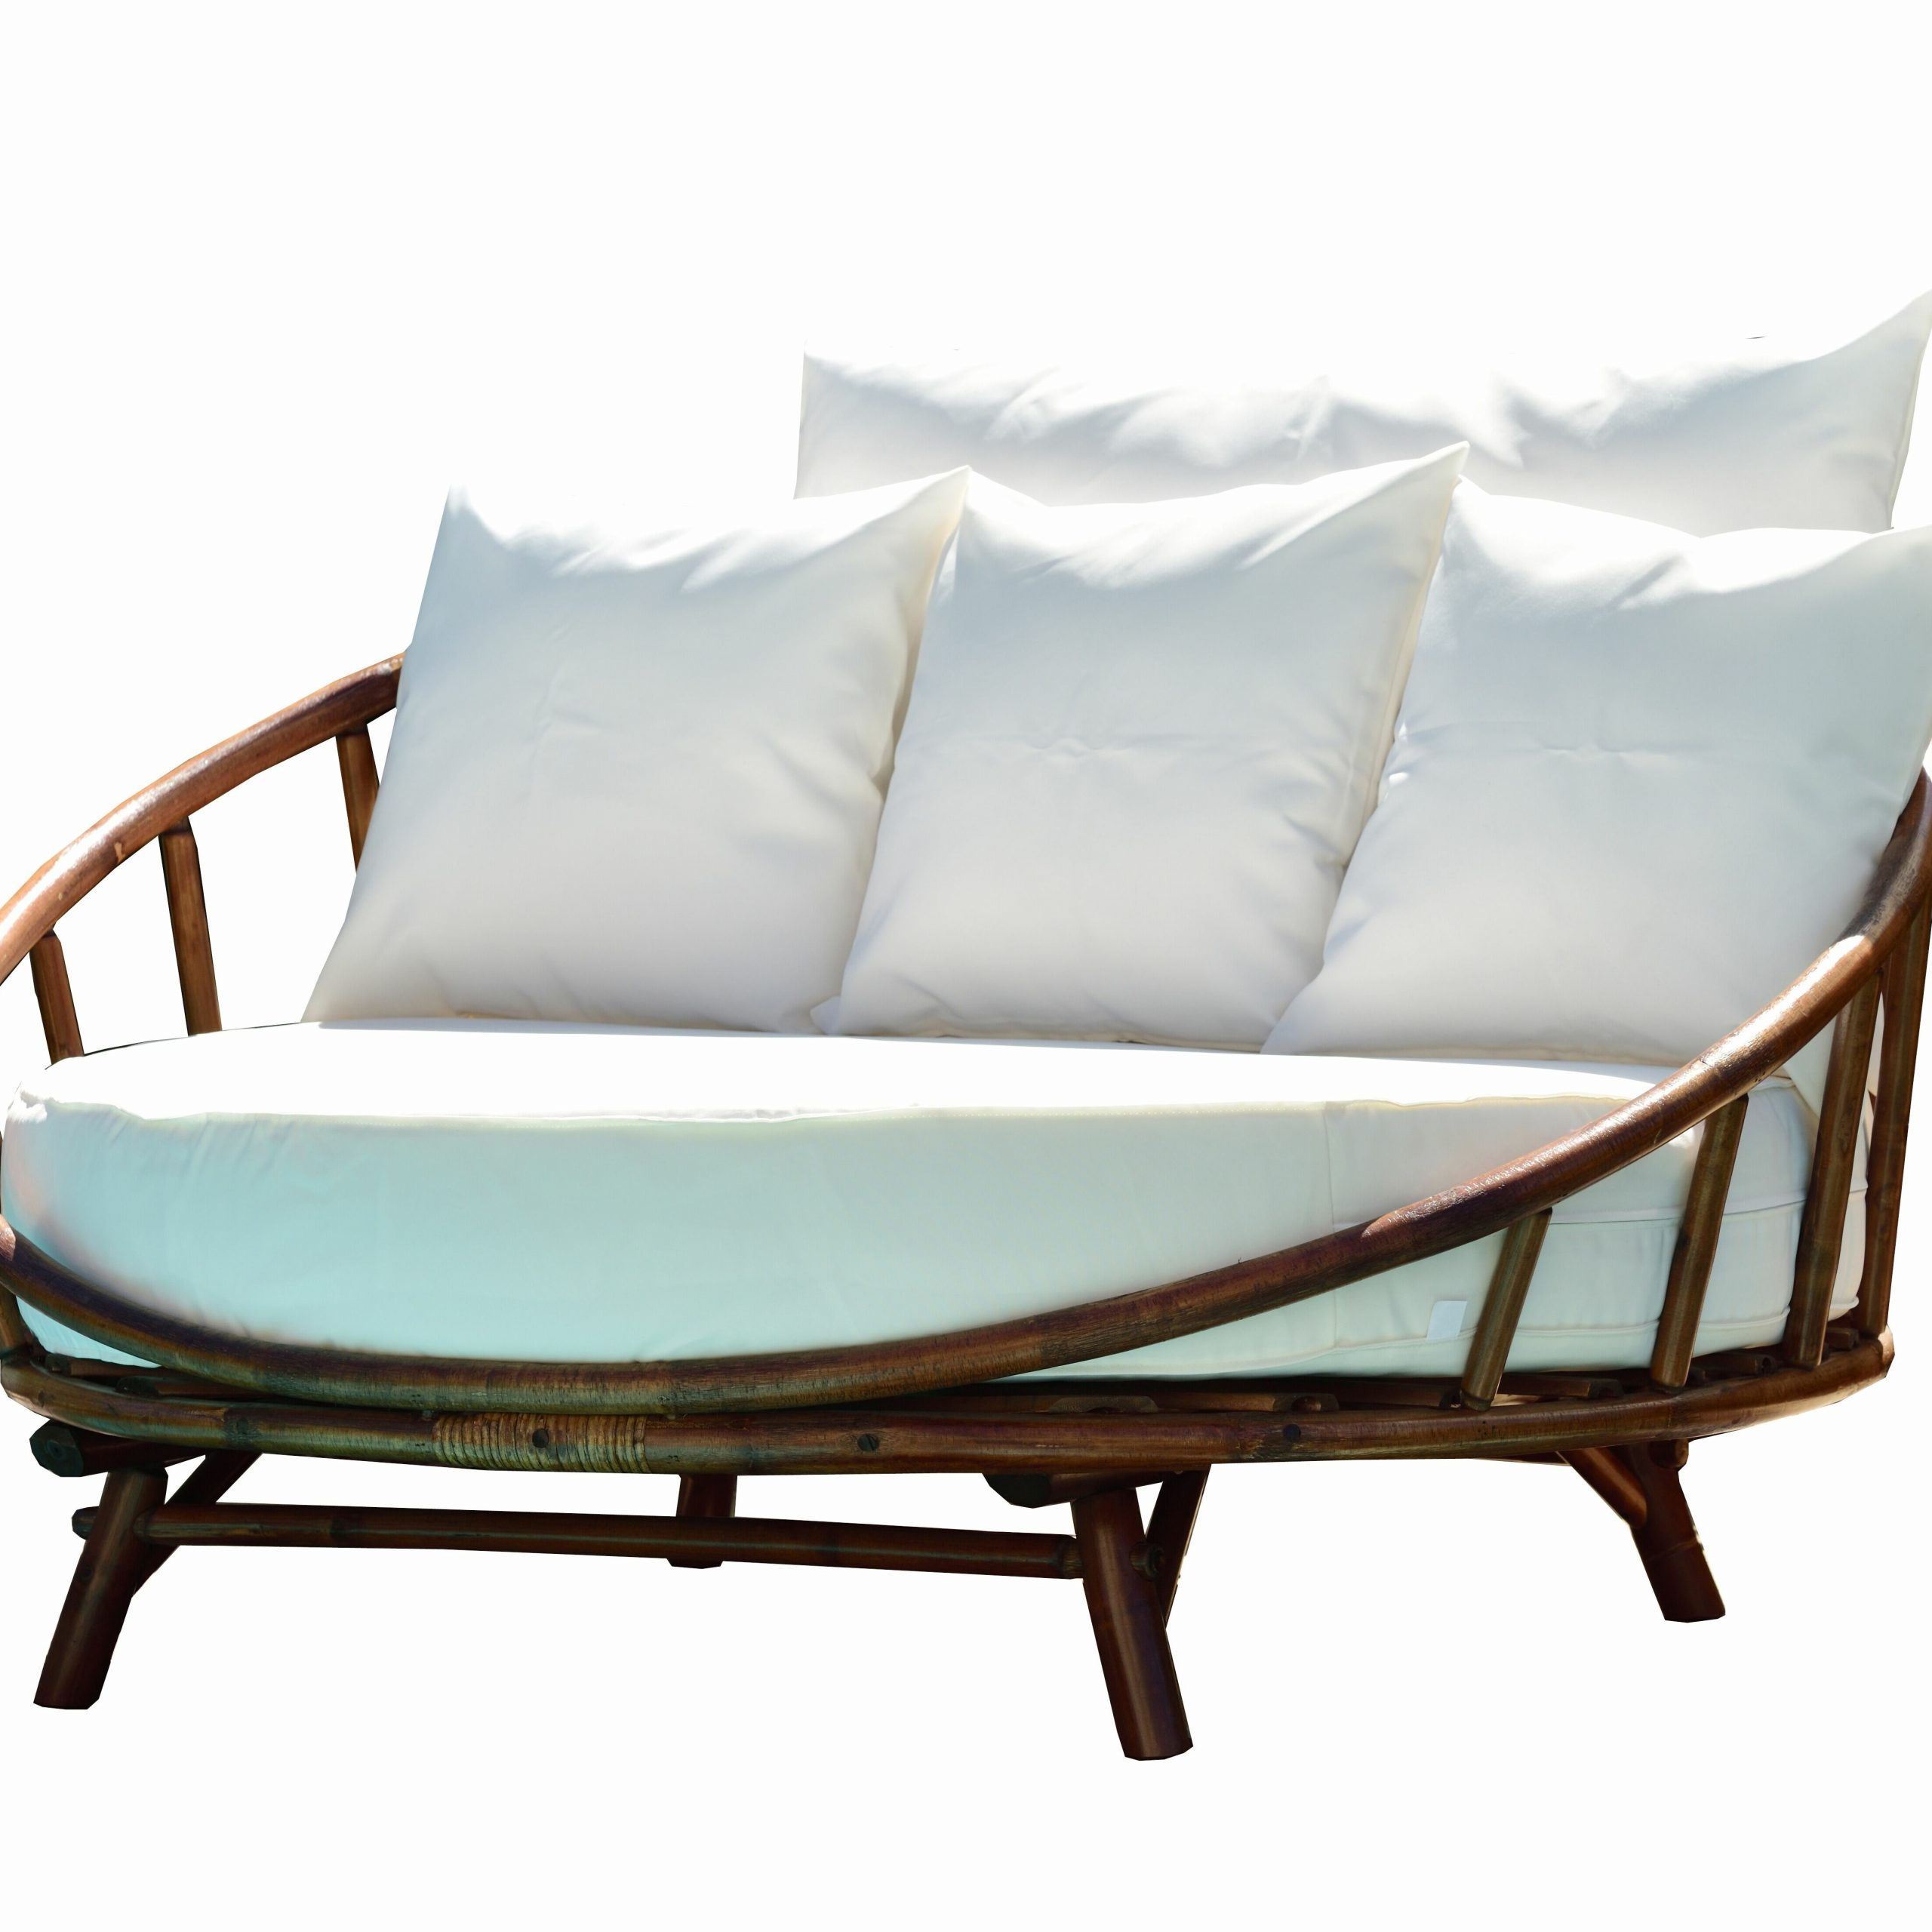 Bodine Patio Daybeds With Cushions Throughout Most Up To Date Bayou Breeze Olu Bamboo Large Round Patio Daybed With Cushions (View 24 of 25)